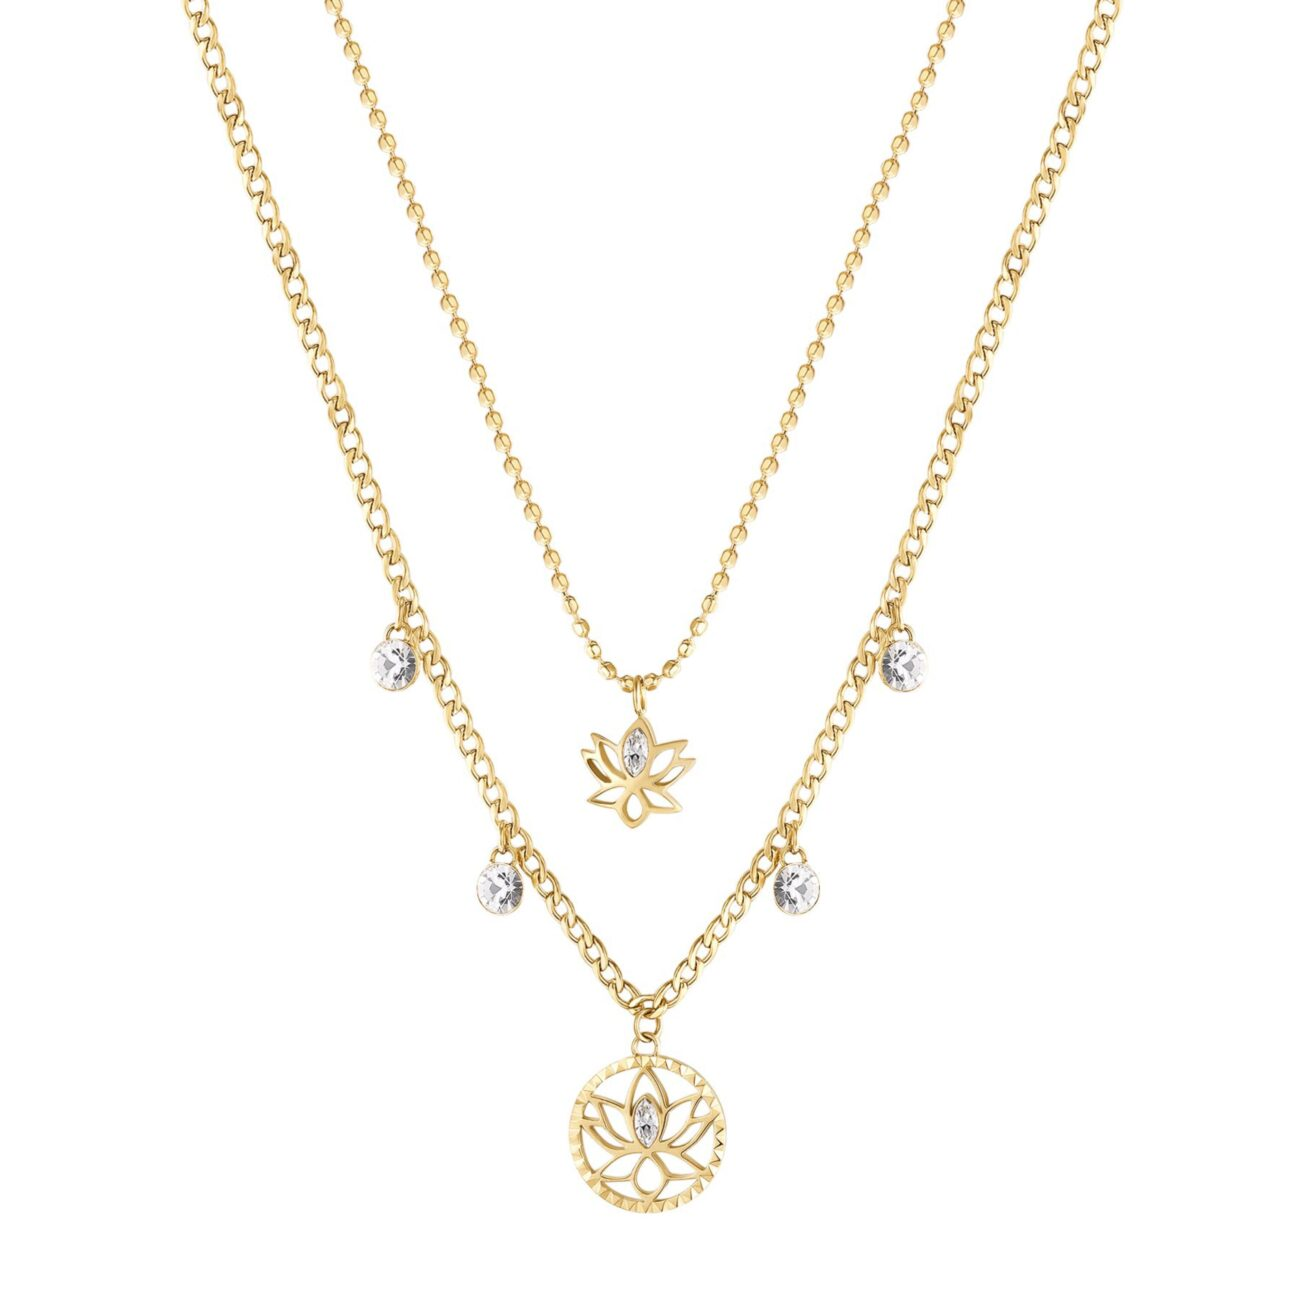 LOTUS FLOWER: REBIRTH, STRENGTH, BEAUTYThe lotus flower means new beginning, the end of an era and the rebirth, a redemption based on strength and perseverance. It is the symbol of elegance, beauty and purity.316L stainless steel double necklace, gold finishes with lotus flower pendants and crystals.